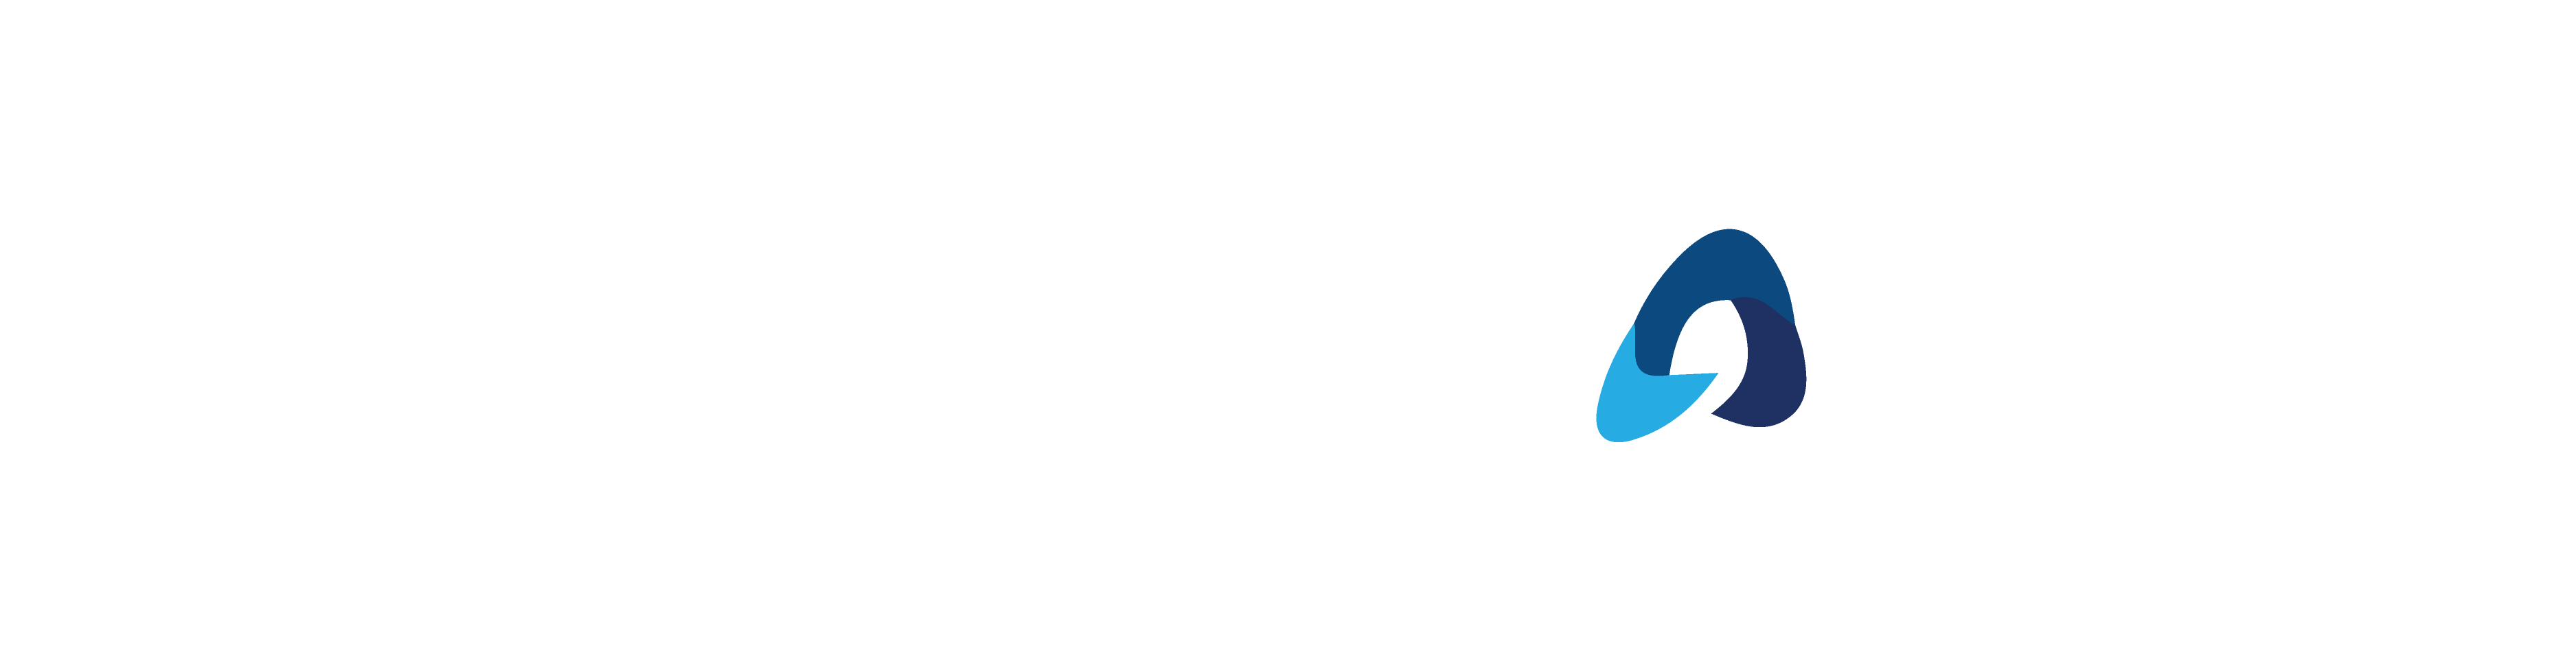 bluestone-logo-color-01